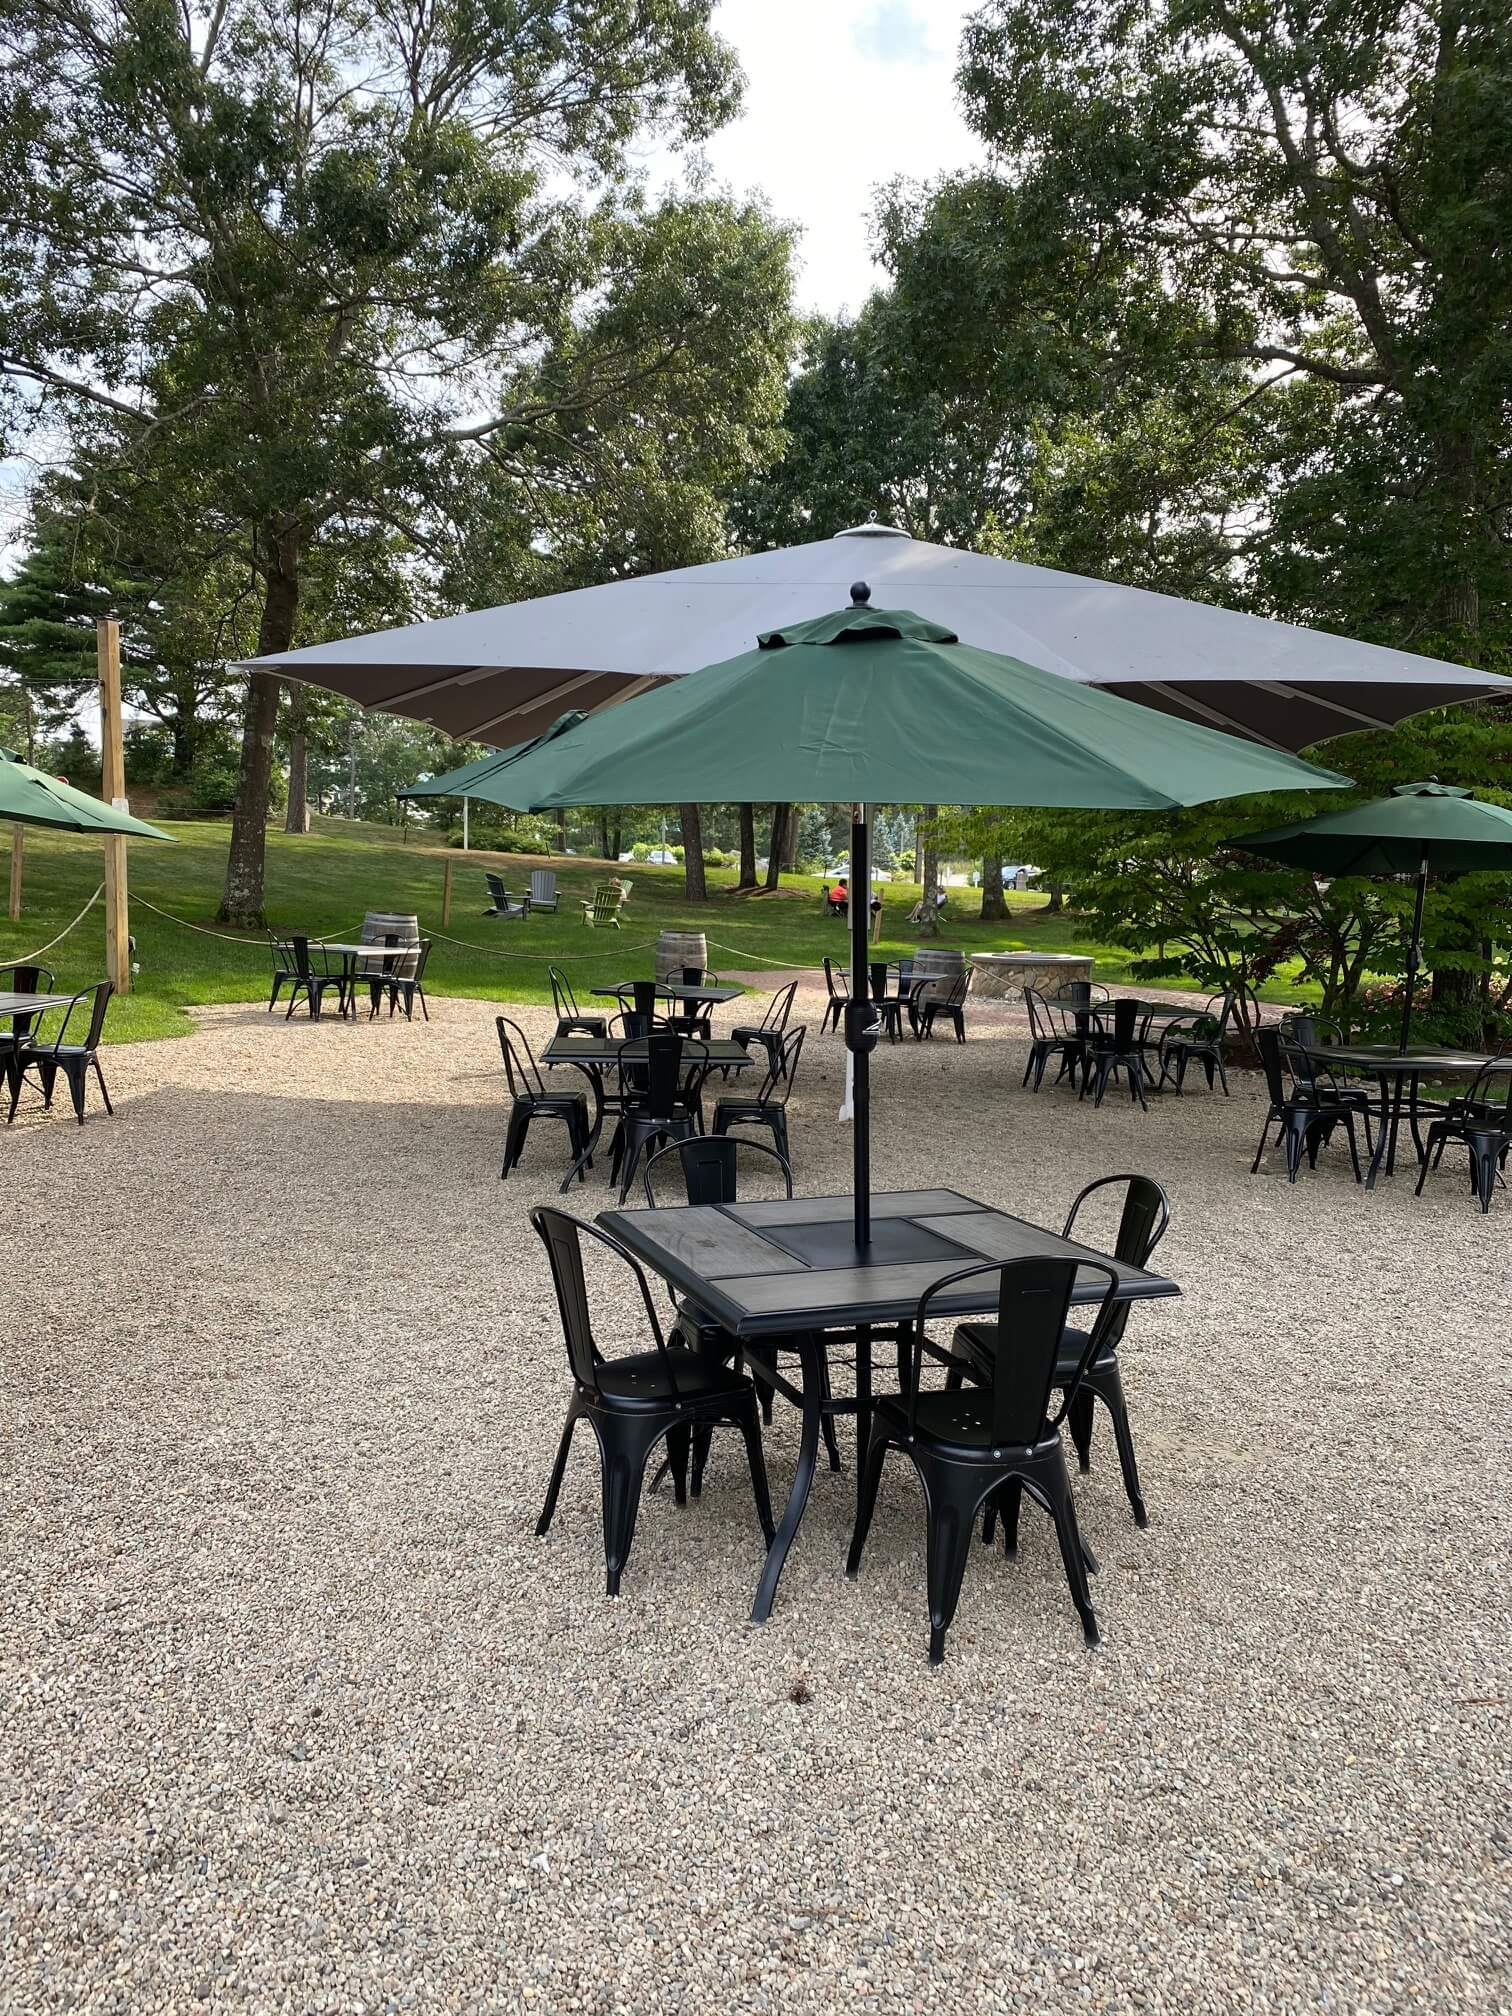 Outdoor seating tables and chairs.